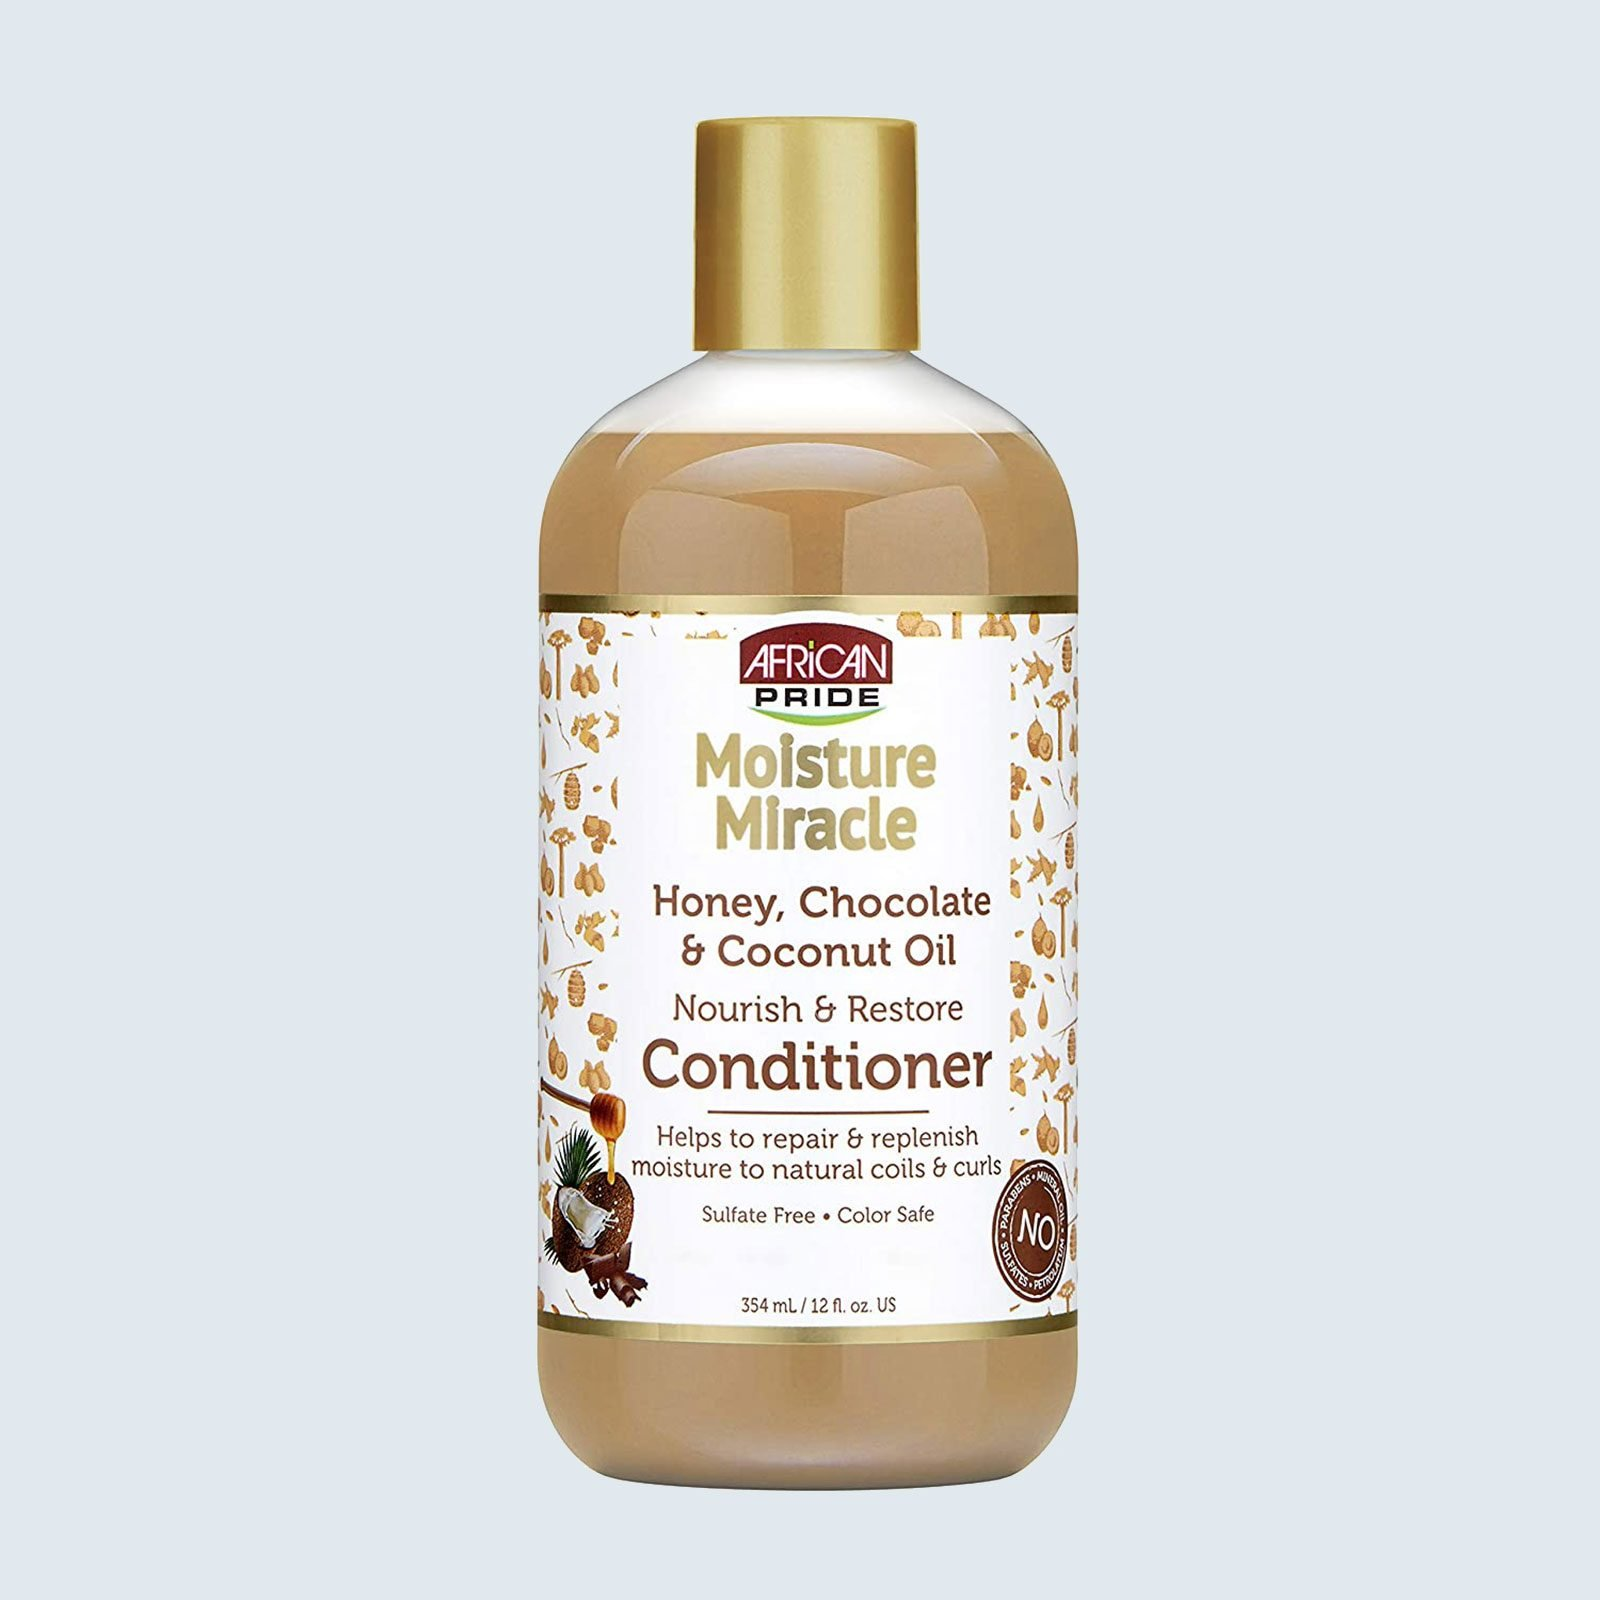 Best conditioner for kinky or coily hair: African Pride Moisture Miracle Honey, Chocolate & Coconut Oil Conditioner